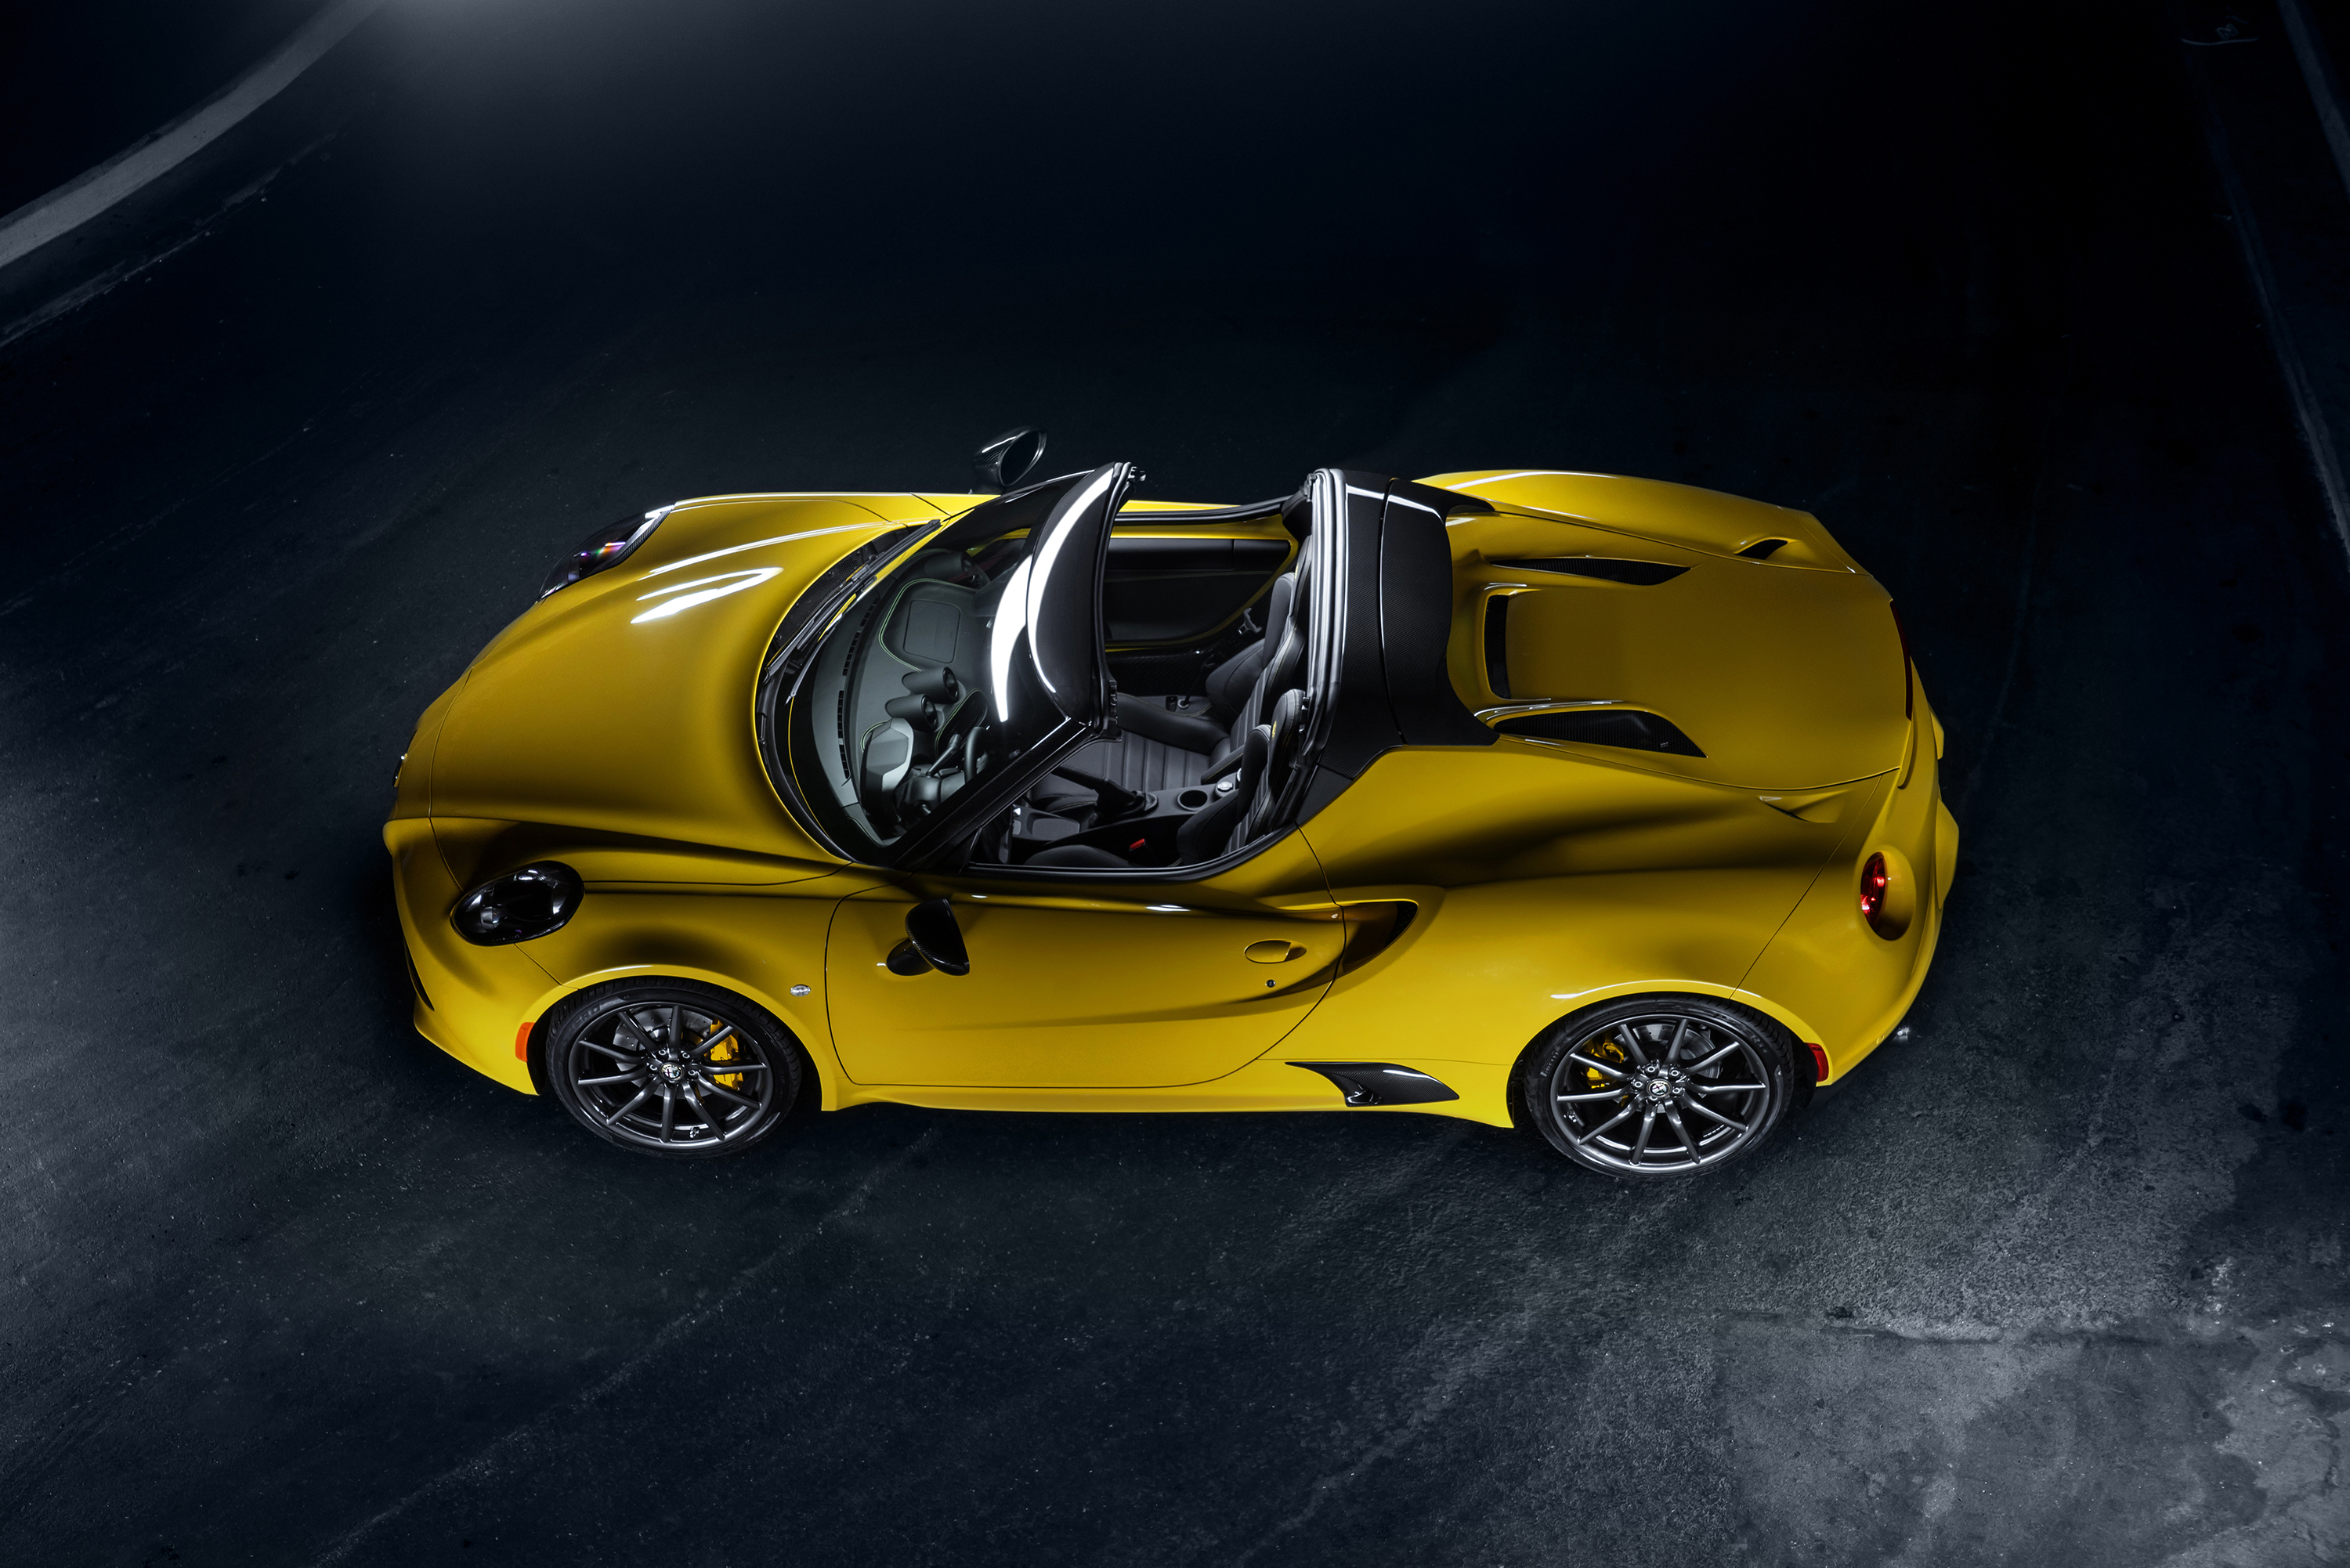 alfa romeo 4c trunk with Rumor Alfa Romeo 4c Spider To Go Out Of Production In 2017 109615 on 2015 Infiniti Q60 also Peugeot 301 Rear Trunk likewise Alfa Romeo Badge together with Rumor Alfa Romeo 4c Spider To Go Out Of Production In 2017 109615 furthermore Alfa Romeo Mito 1 4 2010 2 Specs And Images.